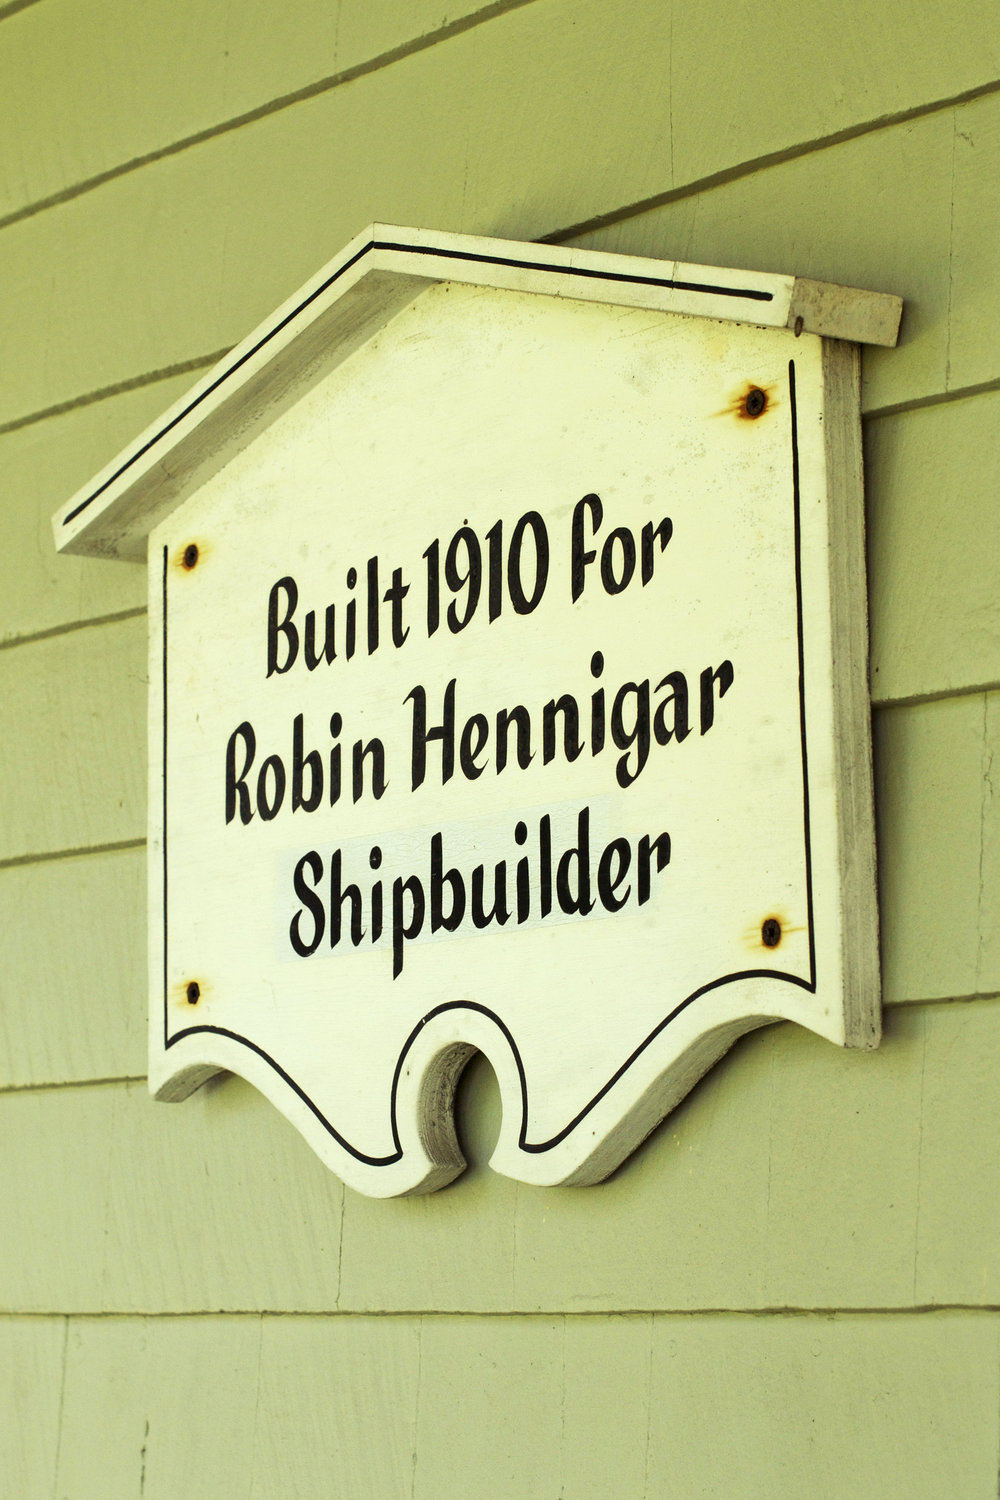 built-in-1910-sign.jpg